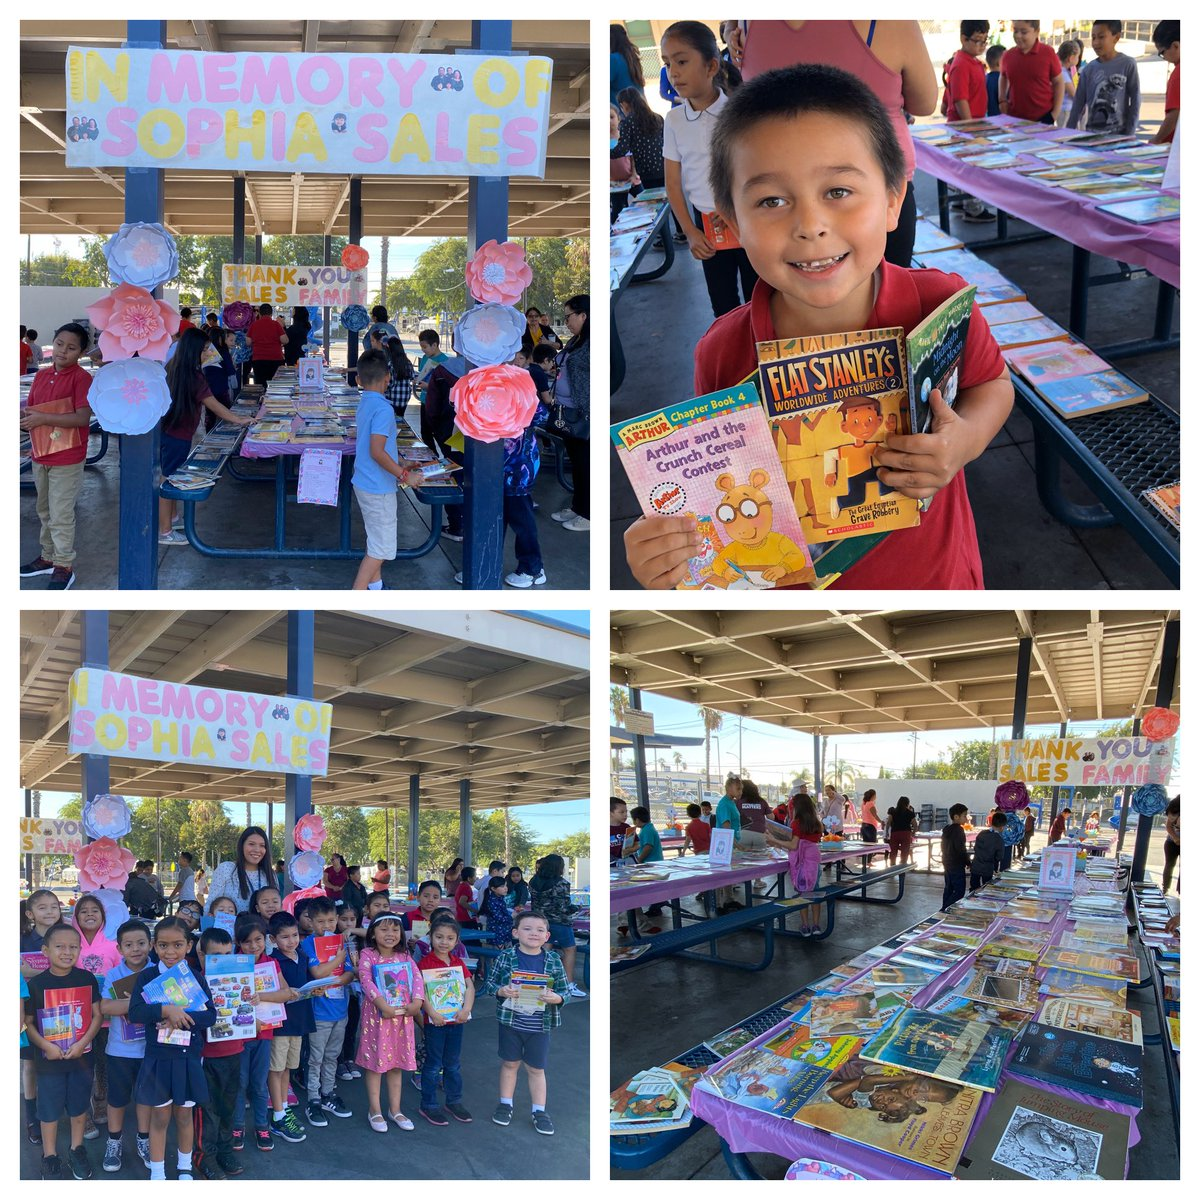 3,500 books were distributed to students at @Revere_School as part of the Sophia Book Project. To date the project has distributed over 25,000 books at 5 different @AnaheimElem schools!